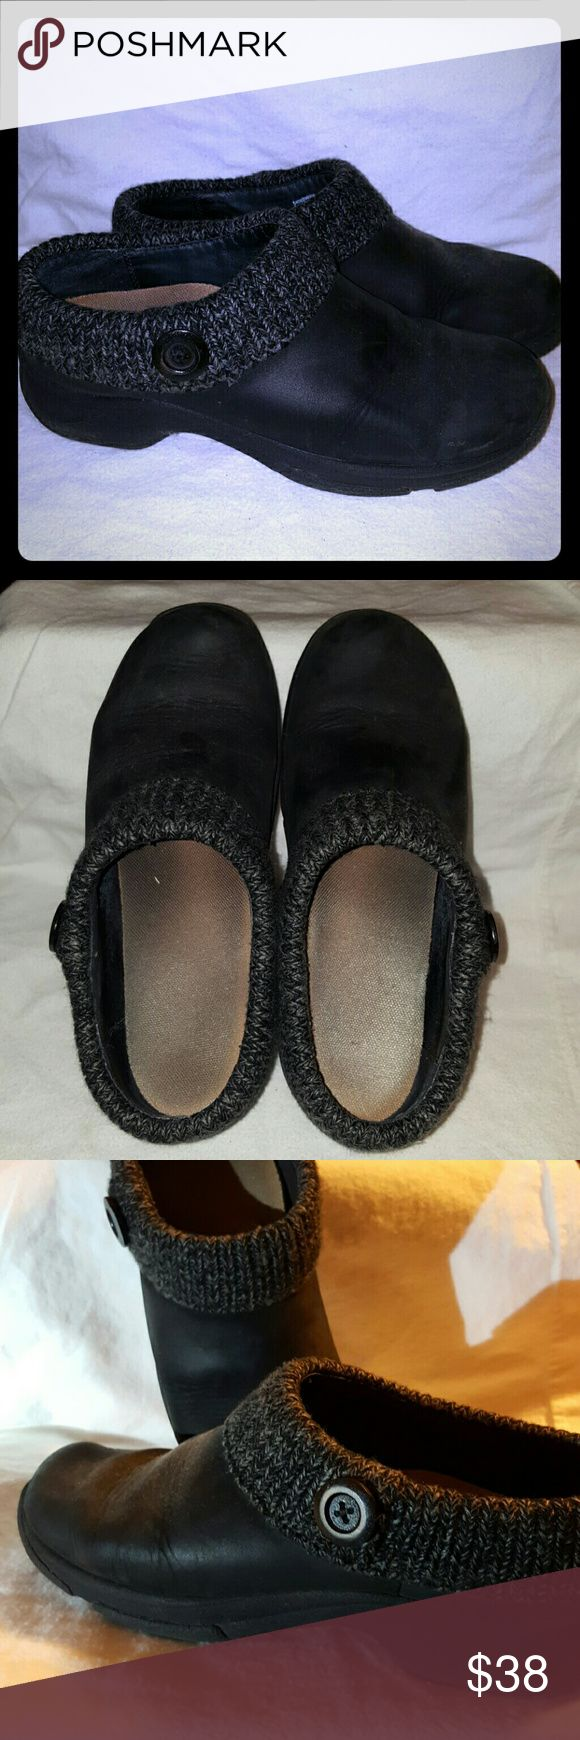 Dansko clogs Sweater type fabric around the edges. Leather upper (nubuck). the Dansko insole has been replaced with a store-bought insole like Dr. Scholl's. Used. Size 40 European. Dansko Shoes Mules & Clogs